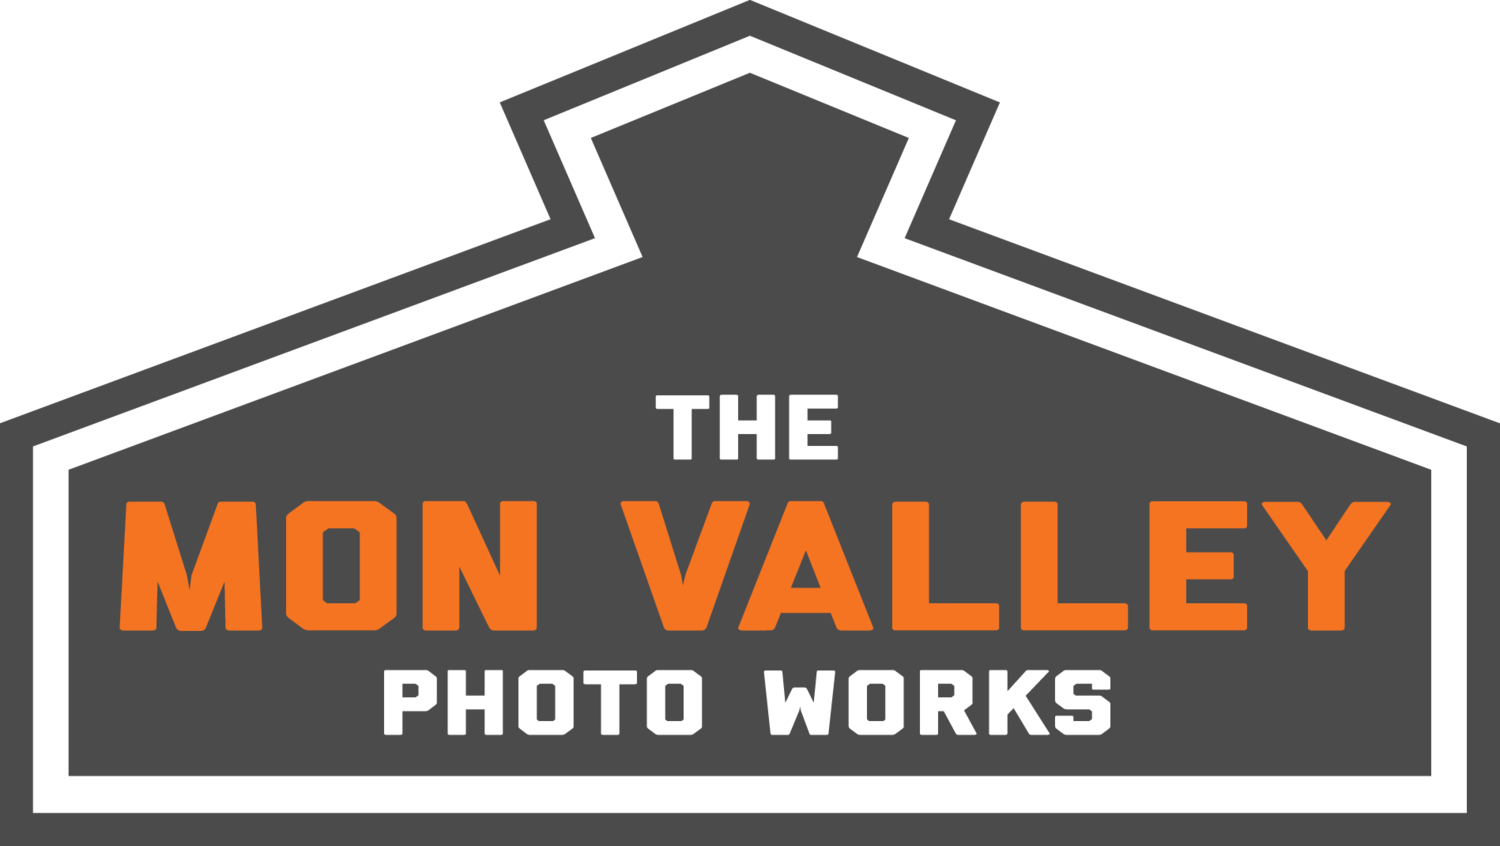 The Mon Valley Photo Works